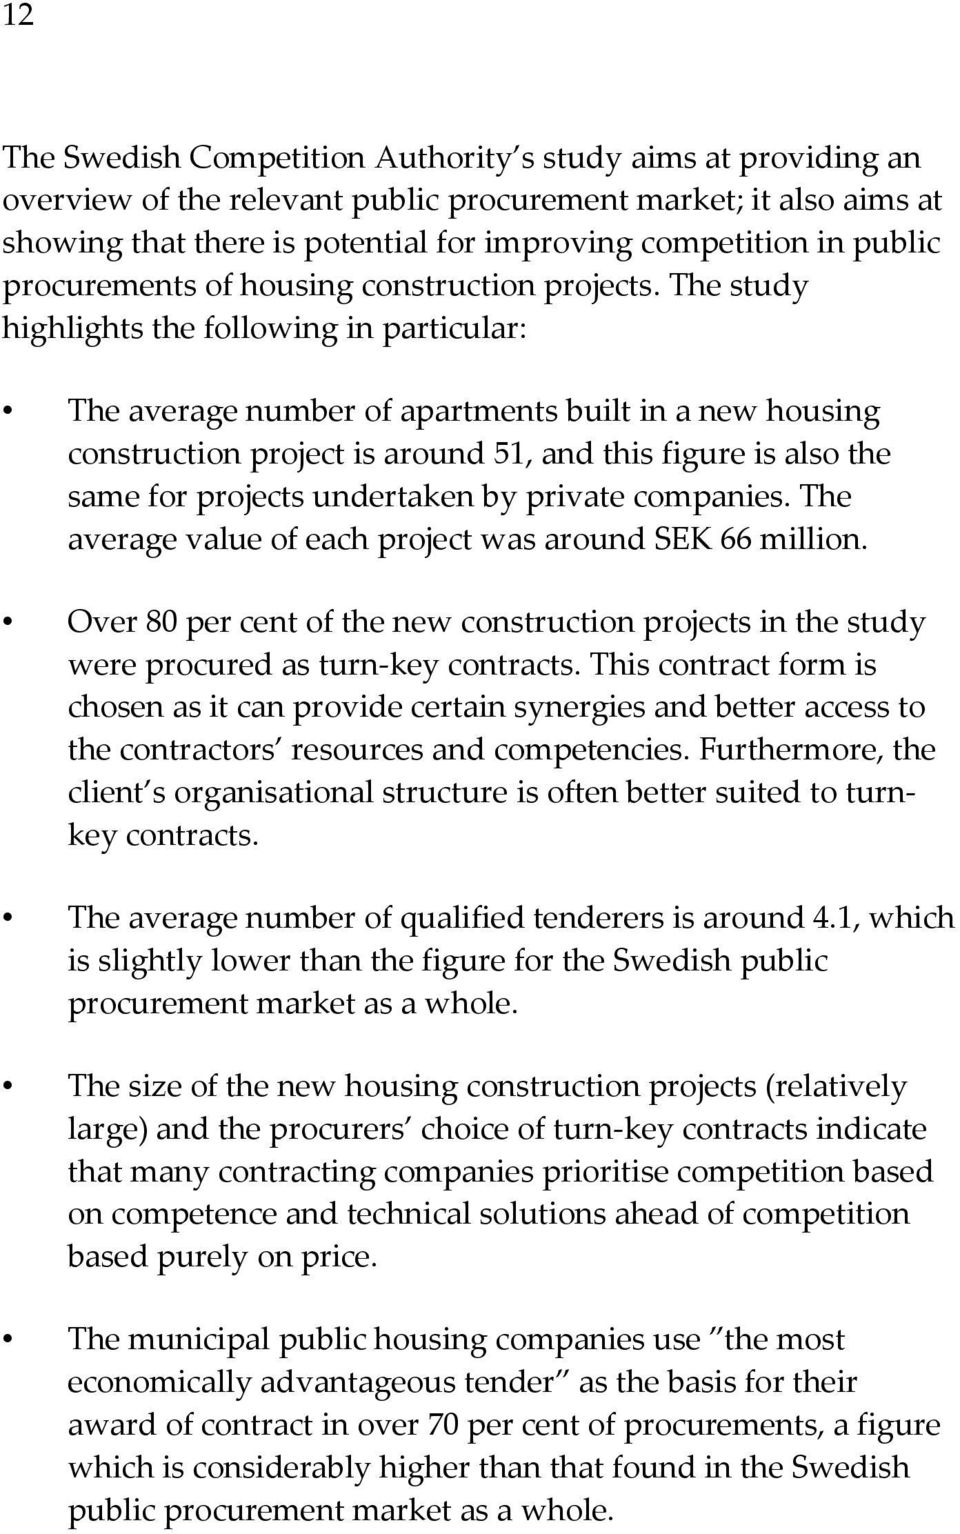 The study highlights the following in particular: The average number of apartments built in a new housing construction project is around 51, and this figure is also the same for projects undertaken